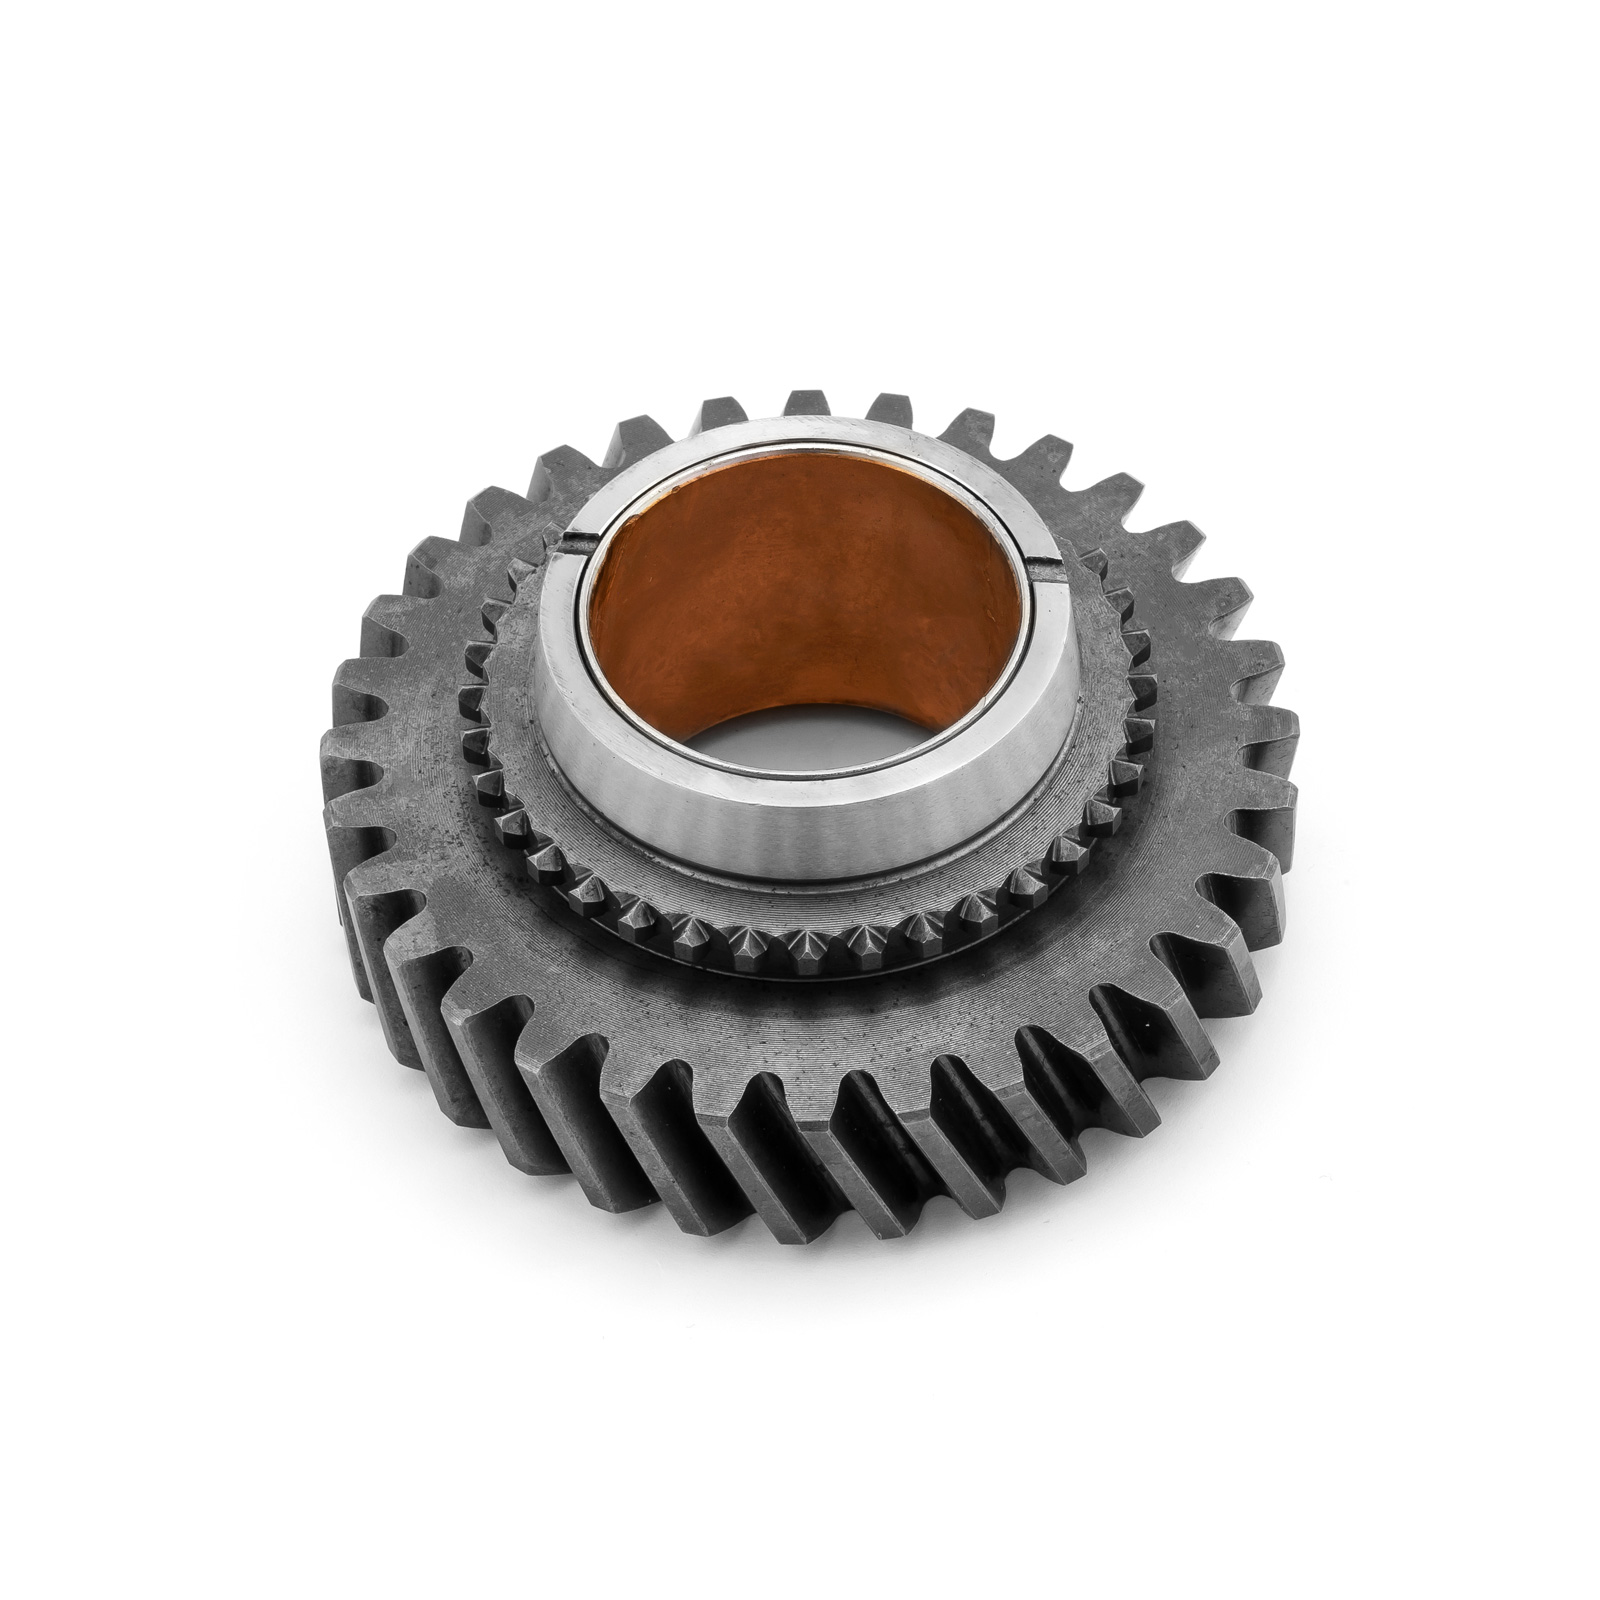 PCE® PCE659.1003 Ford Mustang Falcon 1964-73 Toploader 4 Speed 1st First Gear 32 Tooth